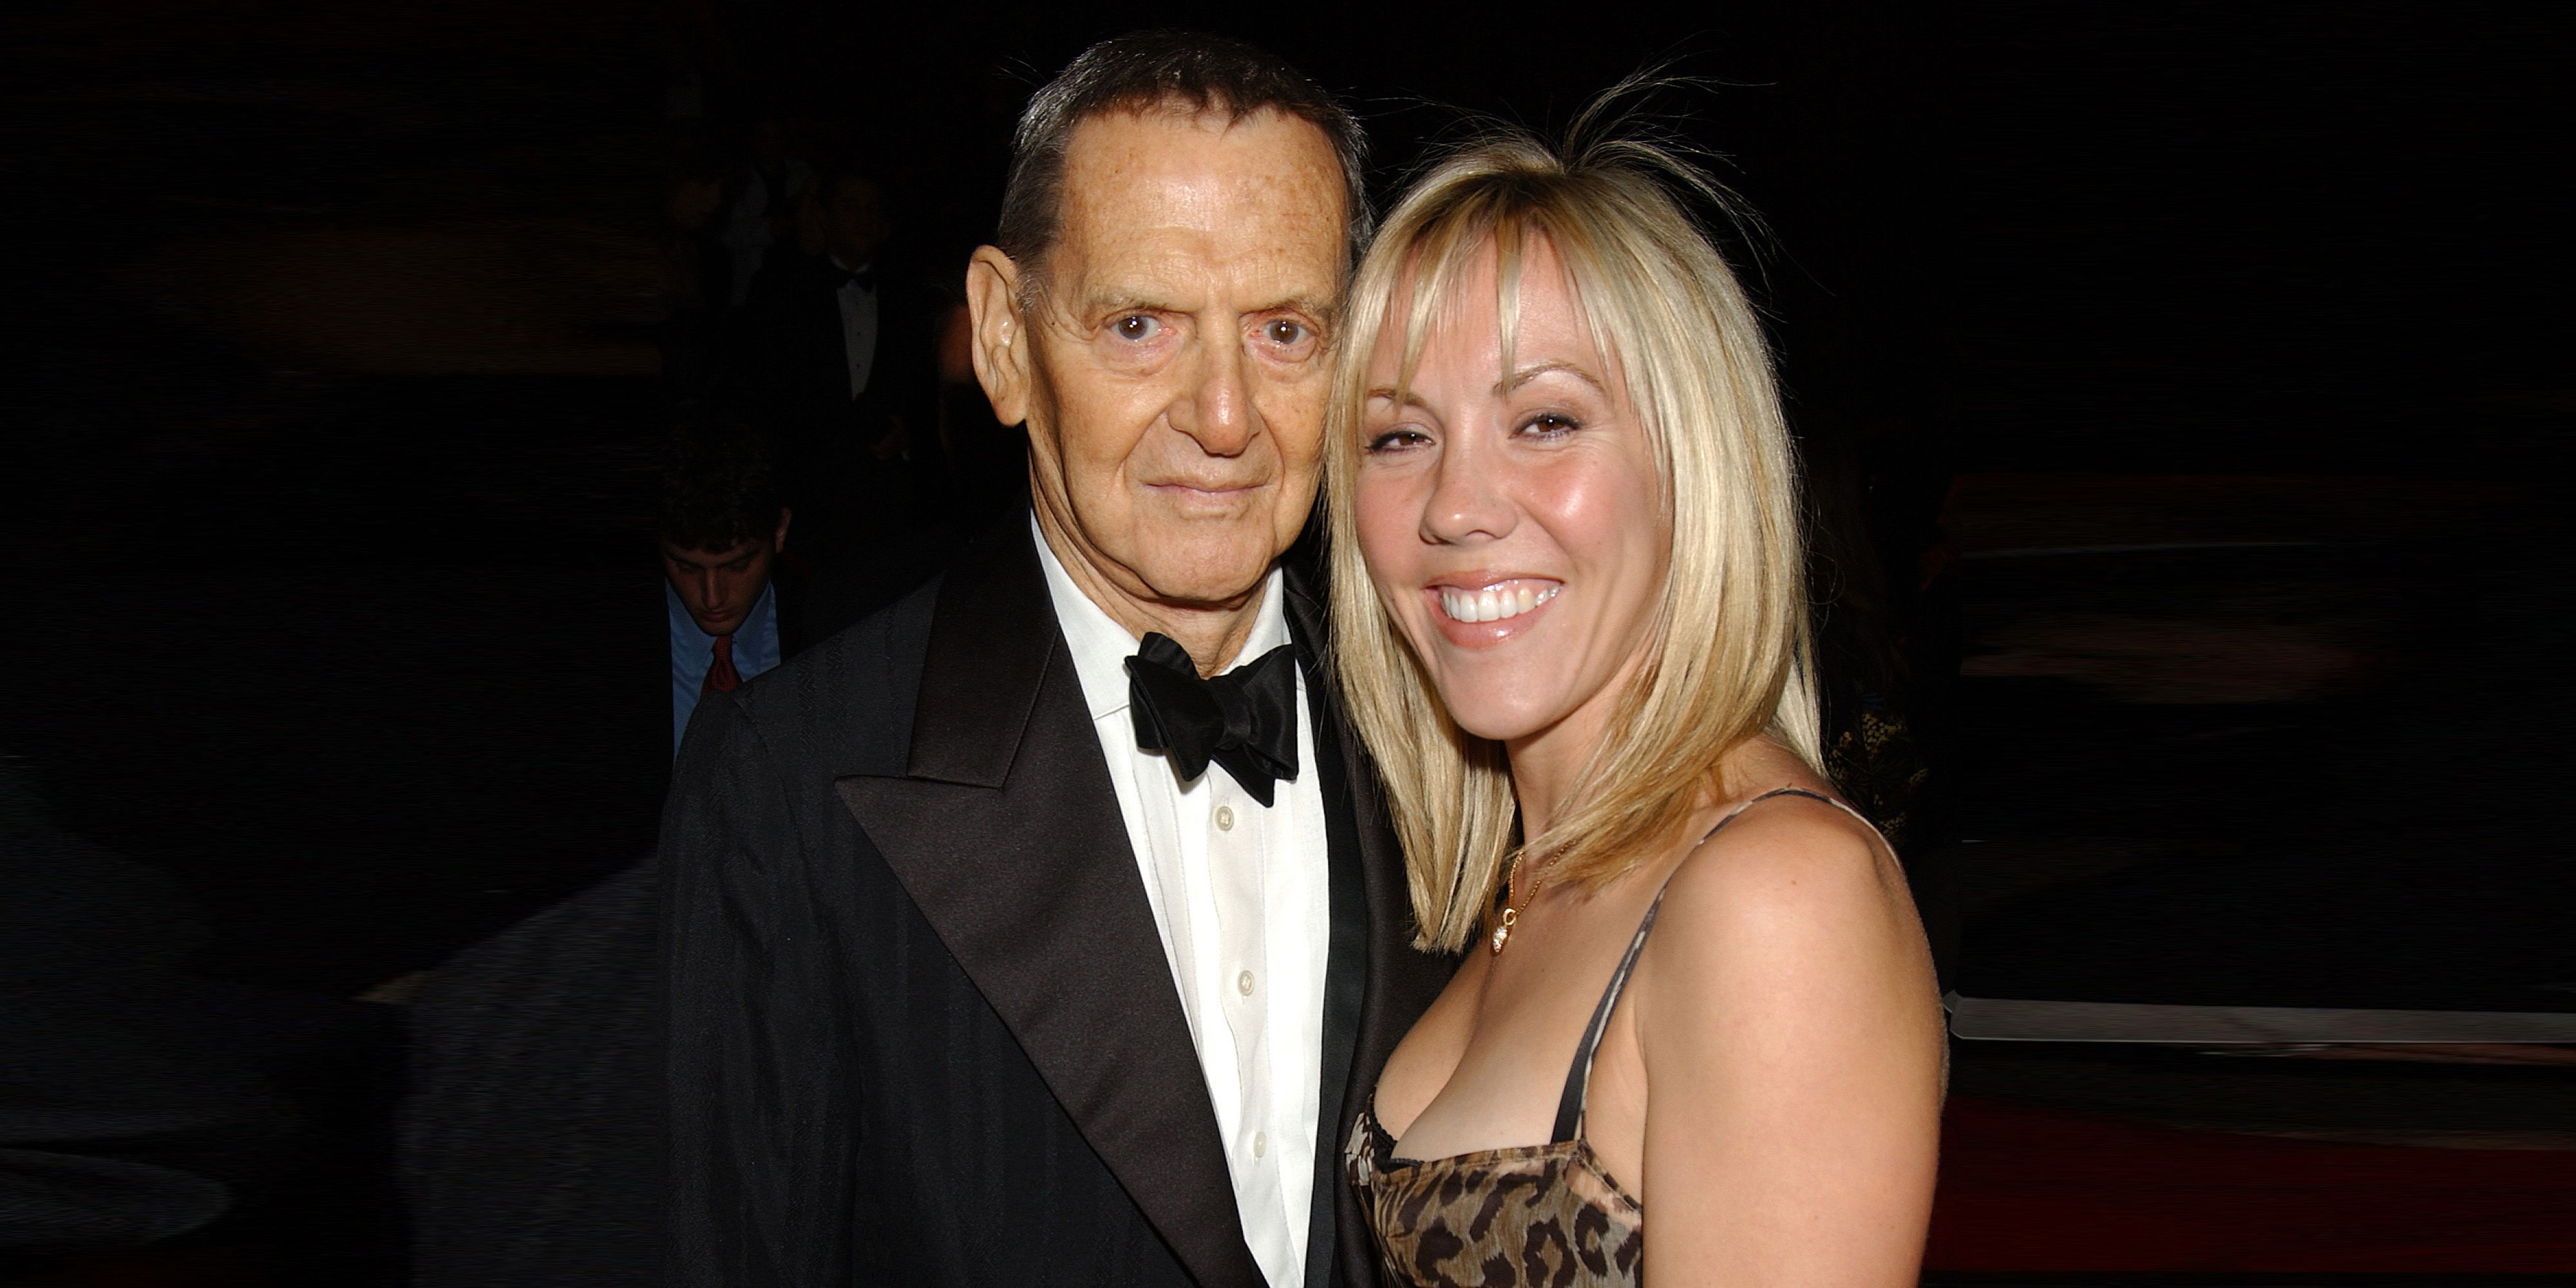 Heather Randall Wife Of Tony Randall The Marie Claire Interview